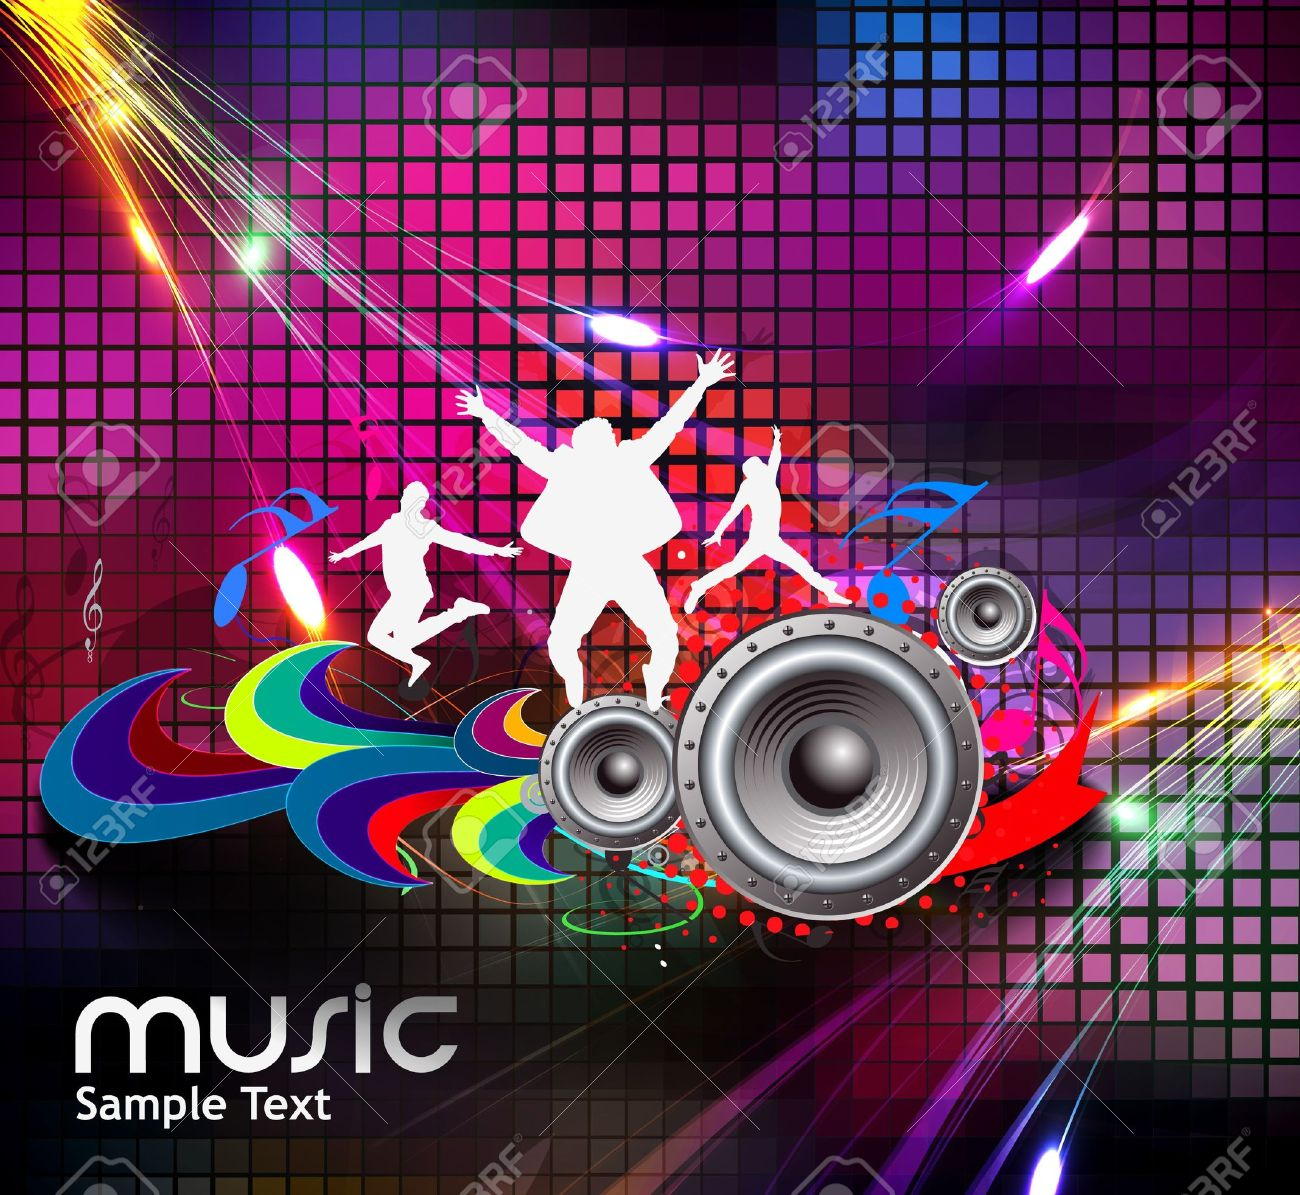 abstract music design for music background use Stock Vector - 14576261